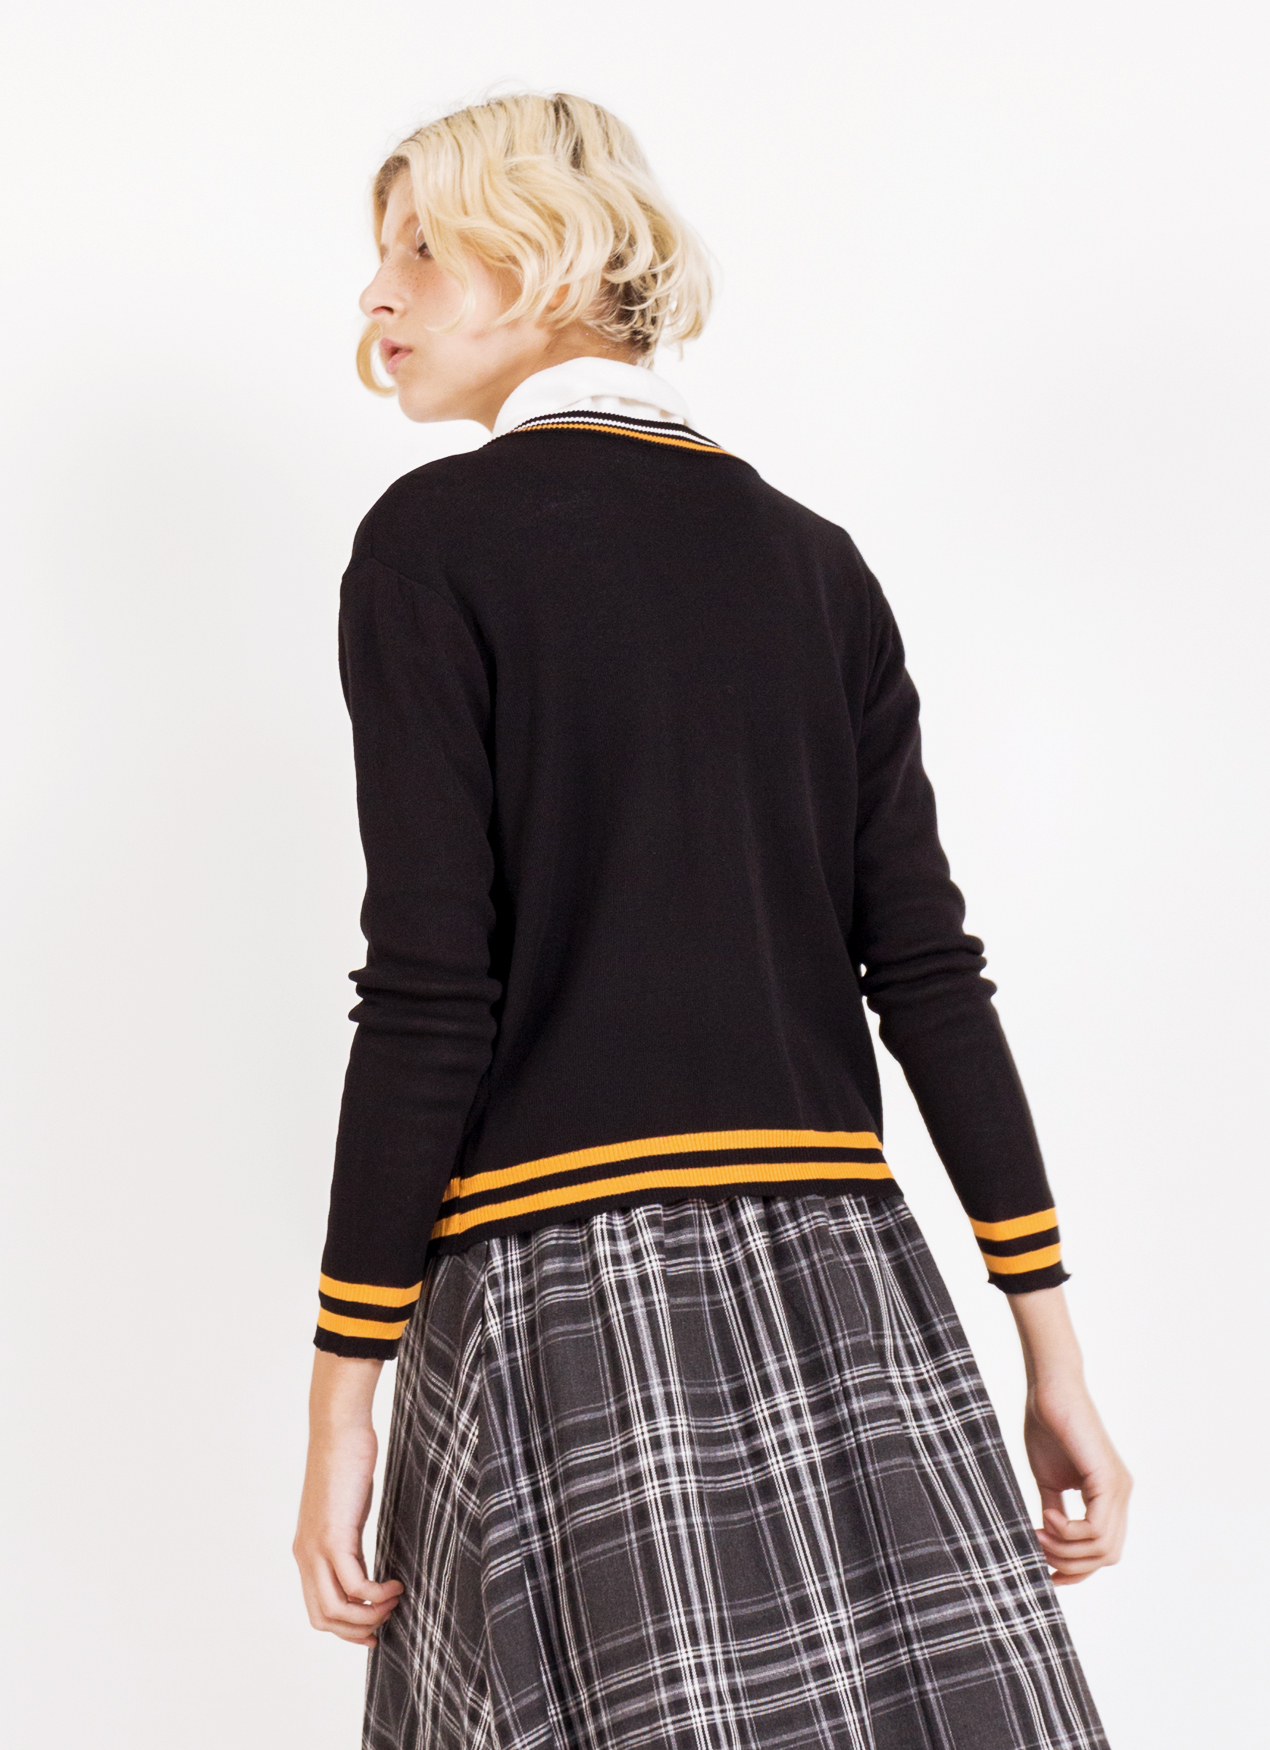 BOWN Carrie Cardigan - Black